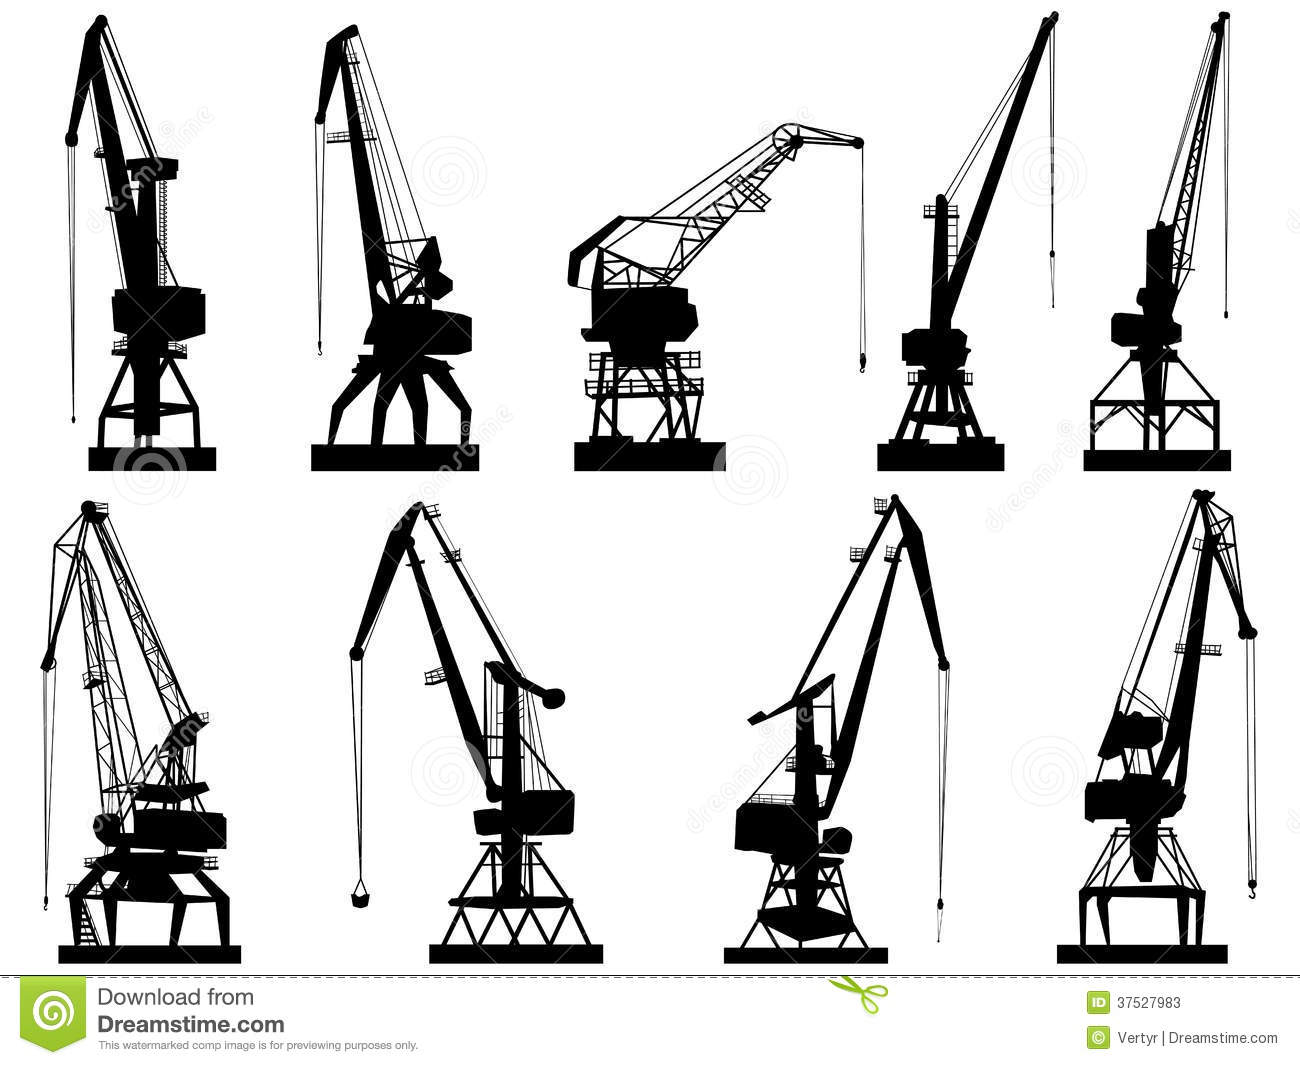 Vsb 01 b likewise Groundforce additionally DIN9021 9908351 additionally Pillar drill drawing as well Pier Foundations. on drilling